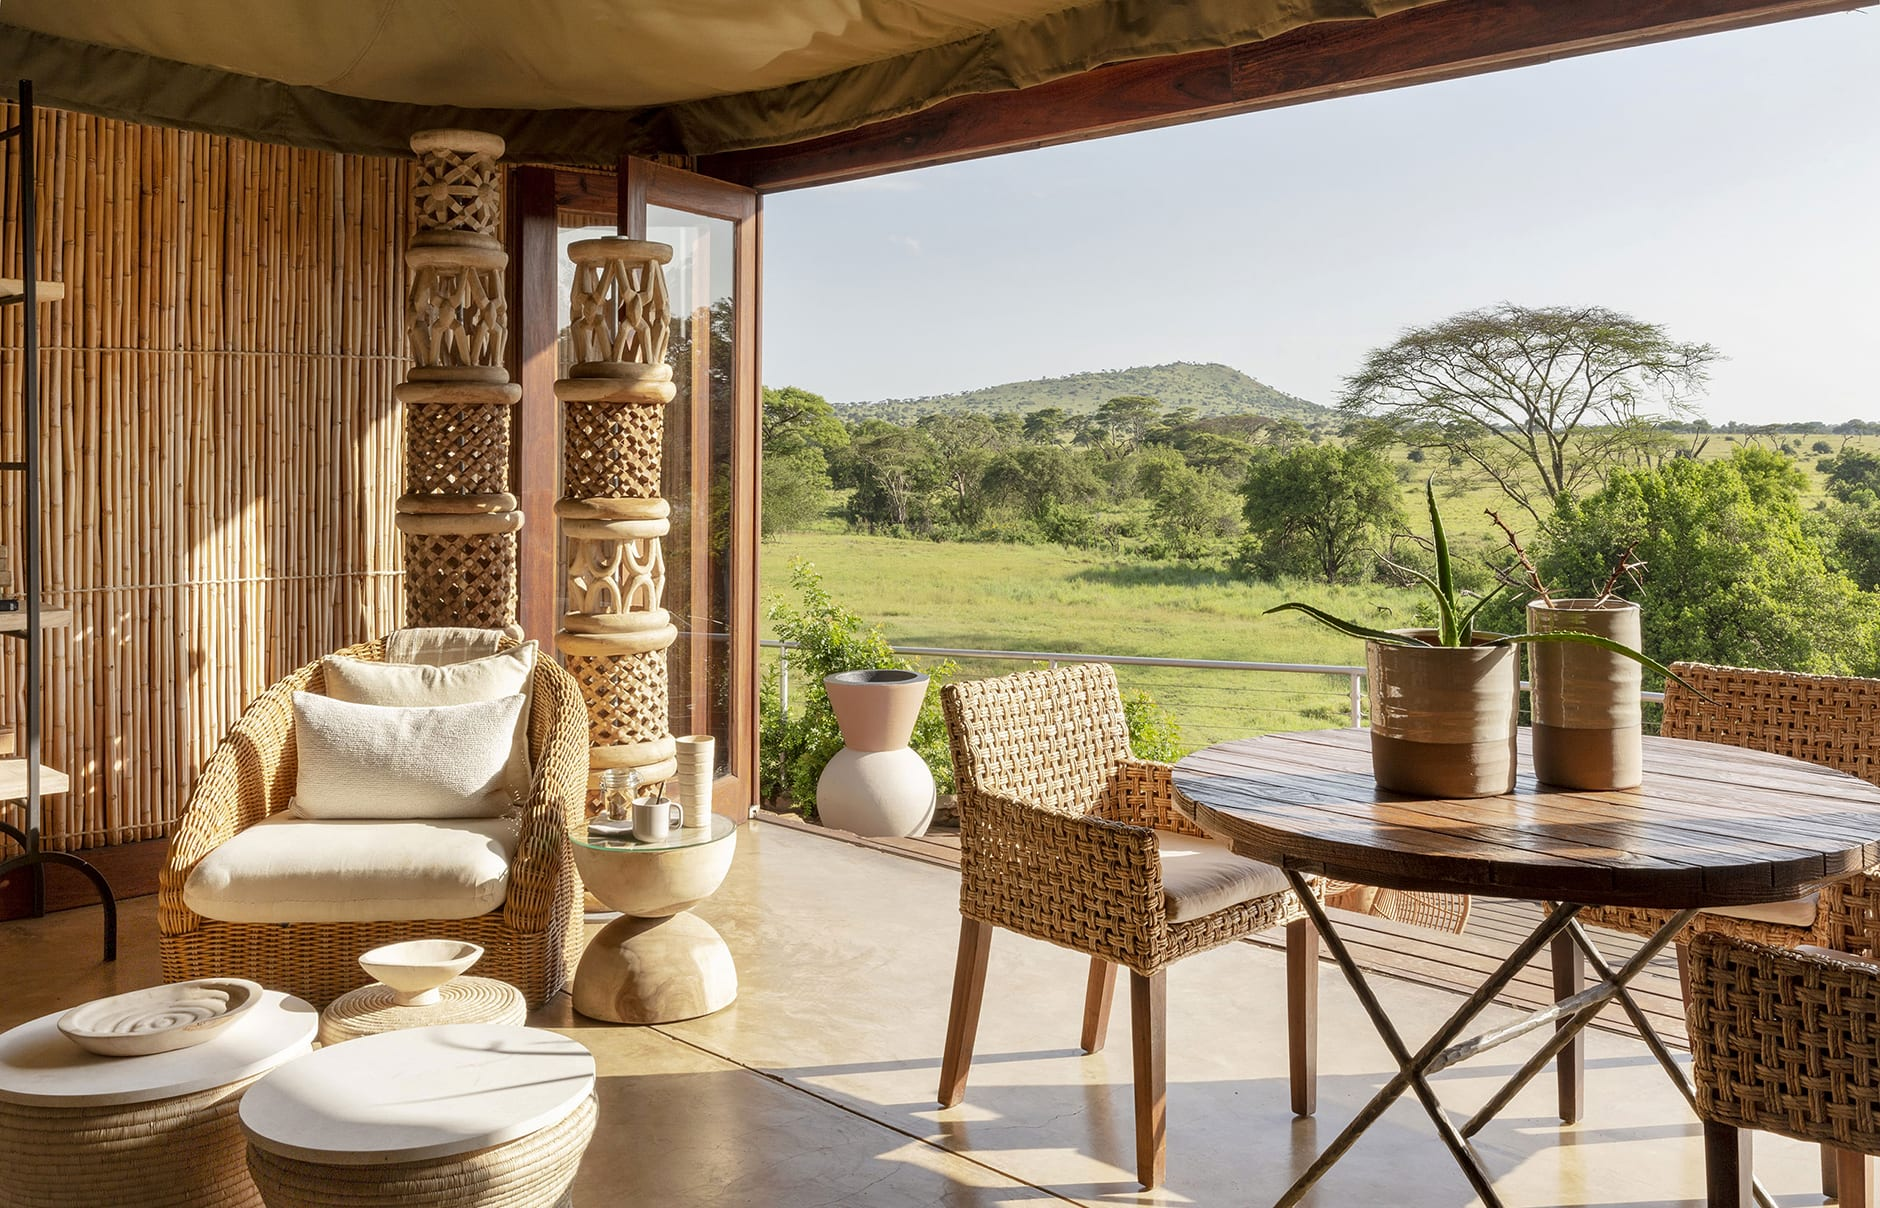 Singita Faru Faru Lodge, Grumeti Serengeti, Tanzania. Luxury Hotel Review by TravelPlusStyle. Photo © Singita